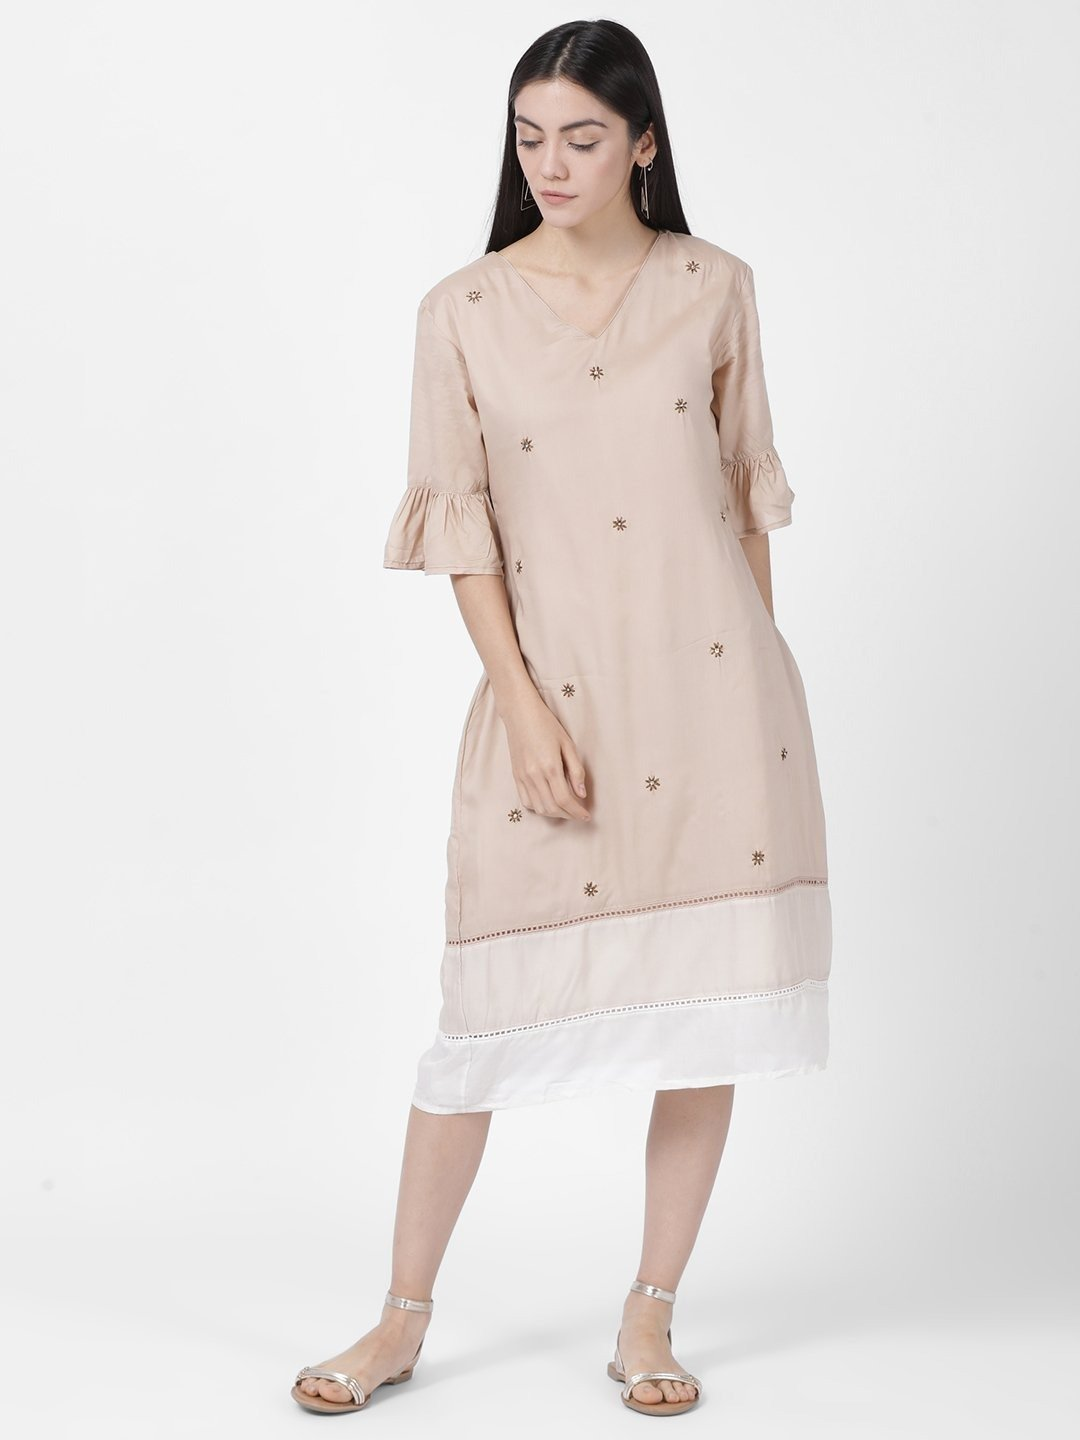 BEIGE CONTRAST HEM DRESS - Rossbelle